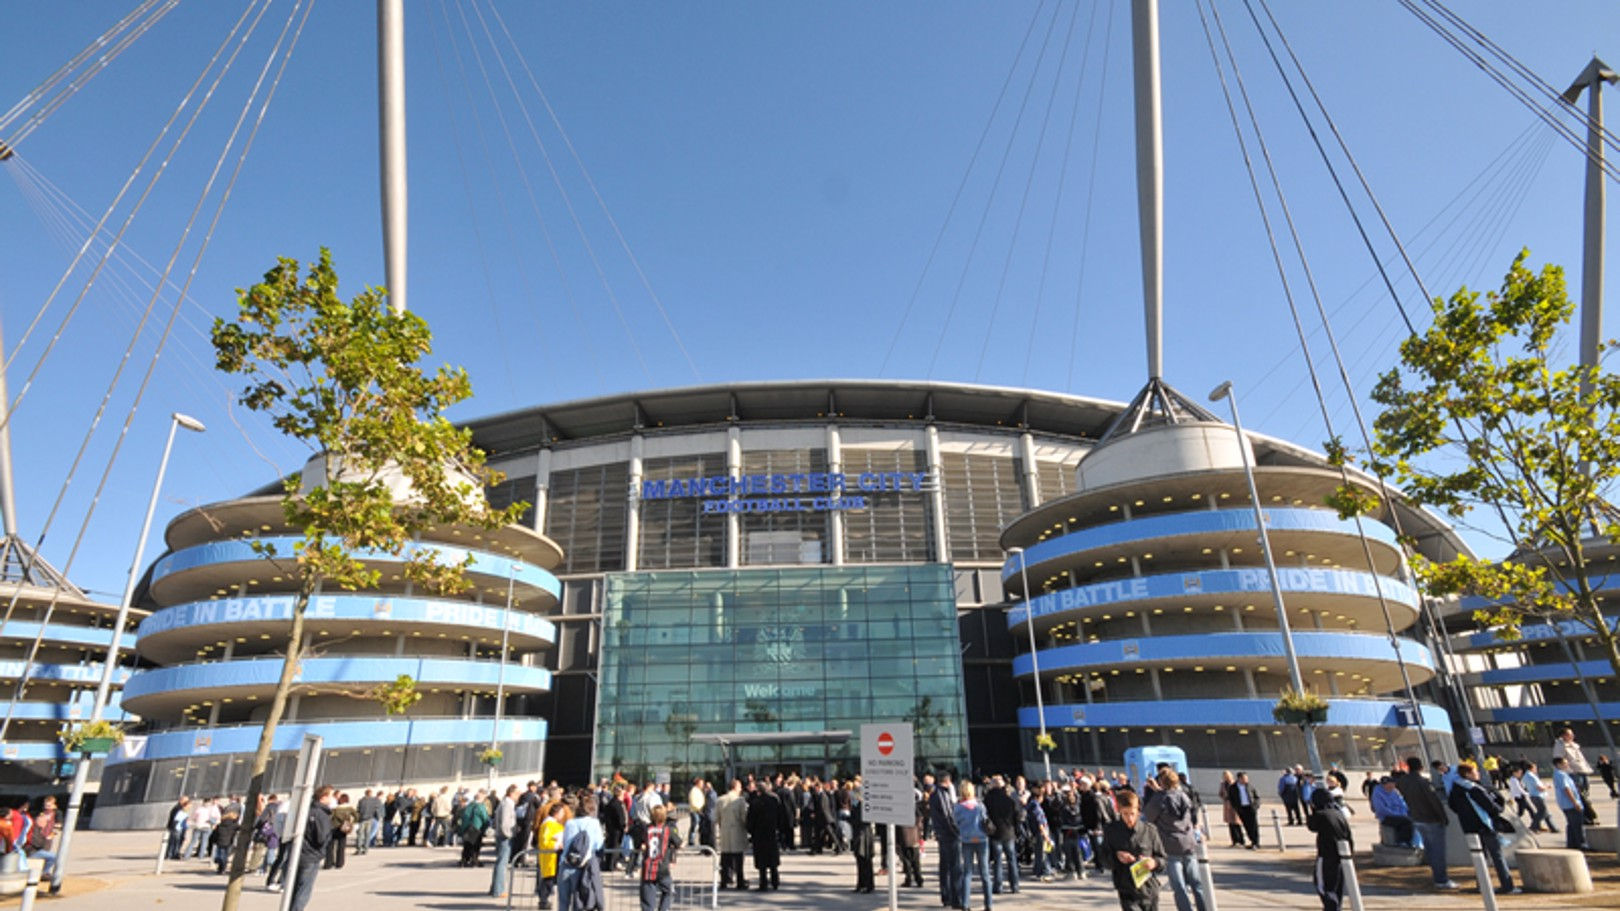 City of Manchester Stadium reception at the front